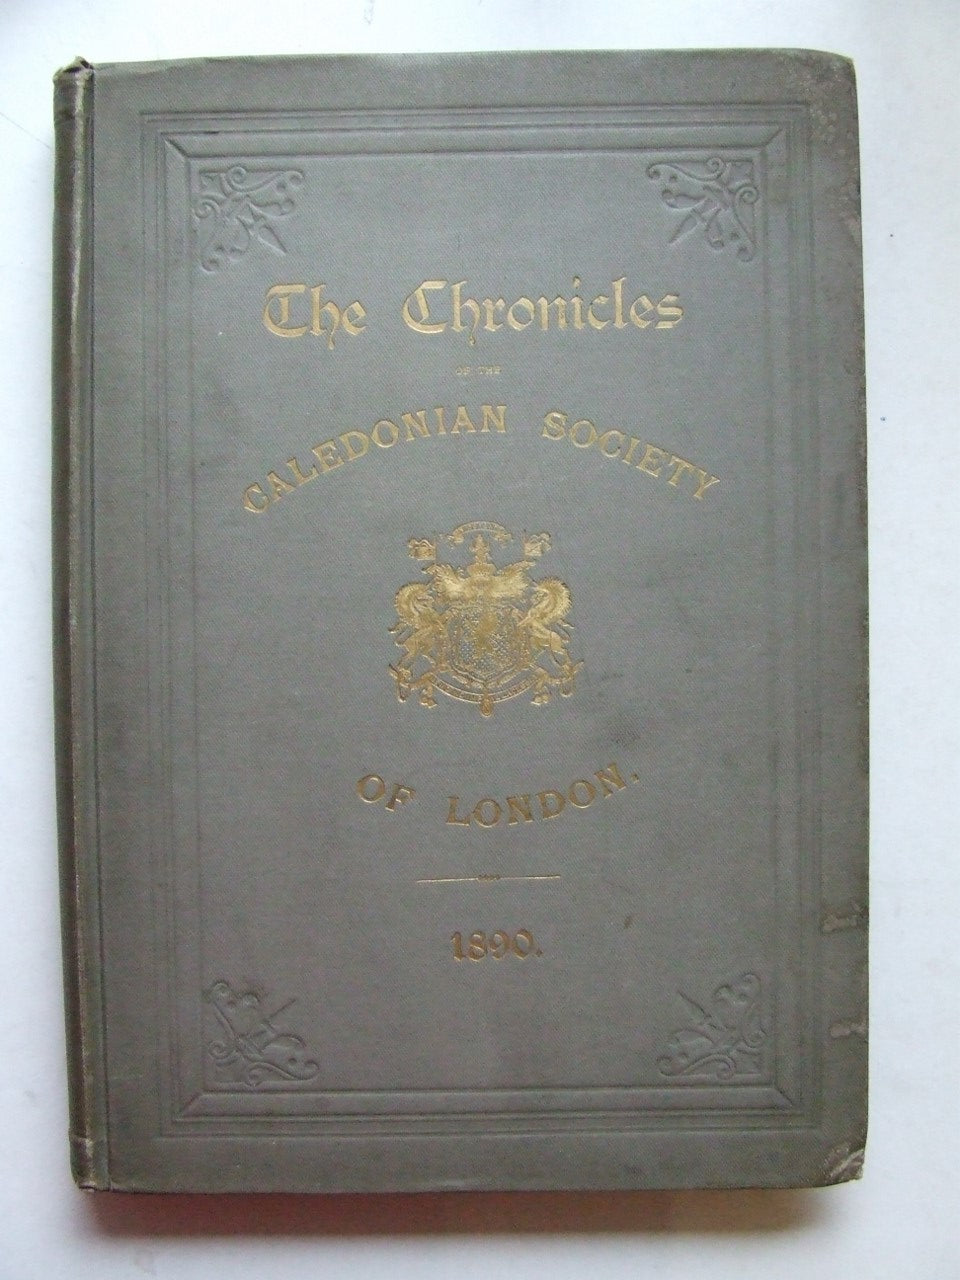 The Chronicles of the Caledonian Society of London